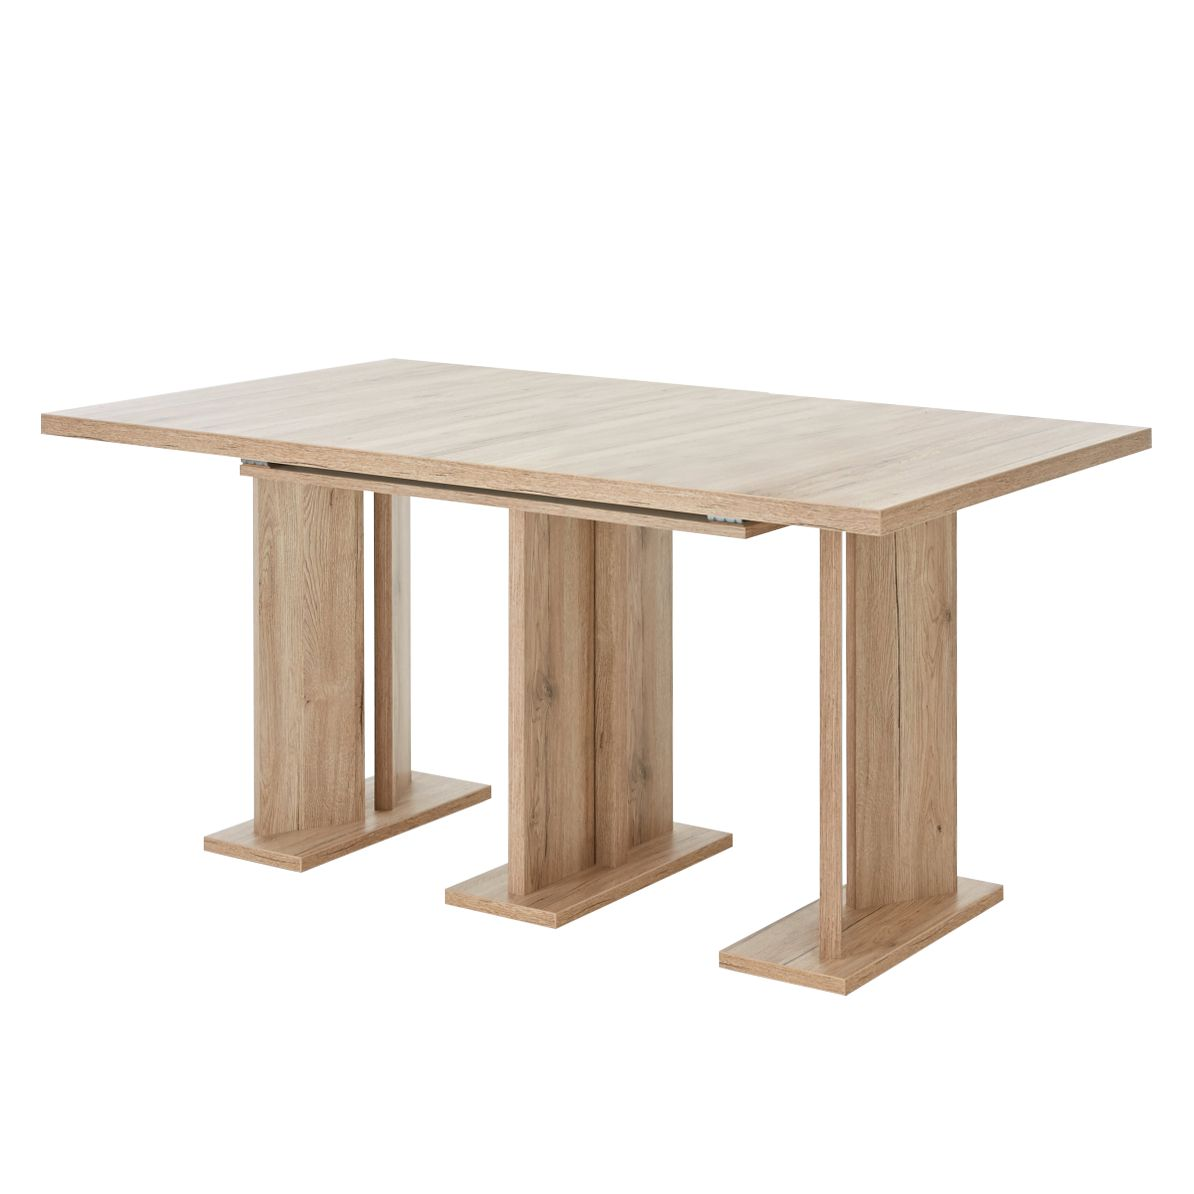 Table a manger dorio extractible trouvez les prix et for Table extractible